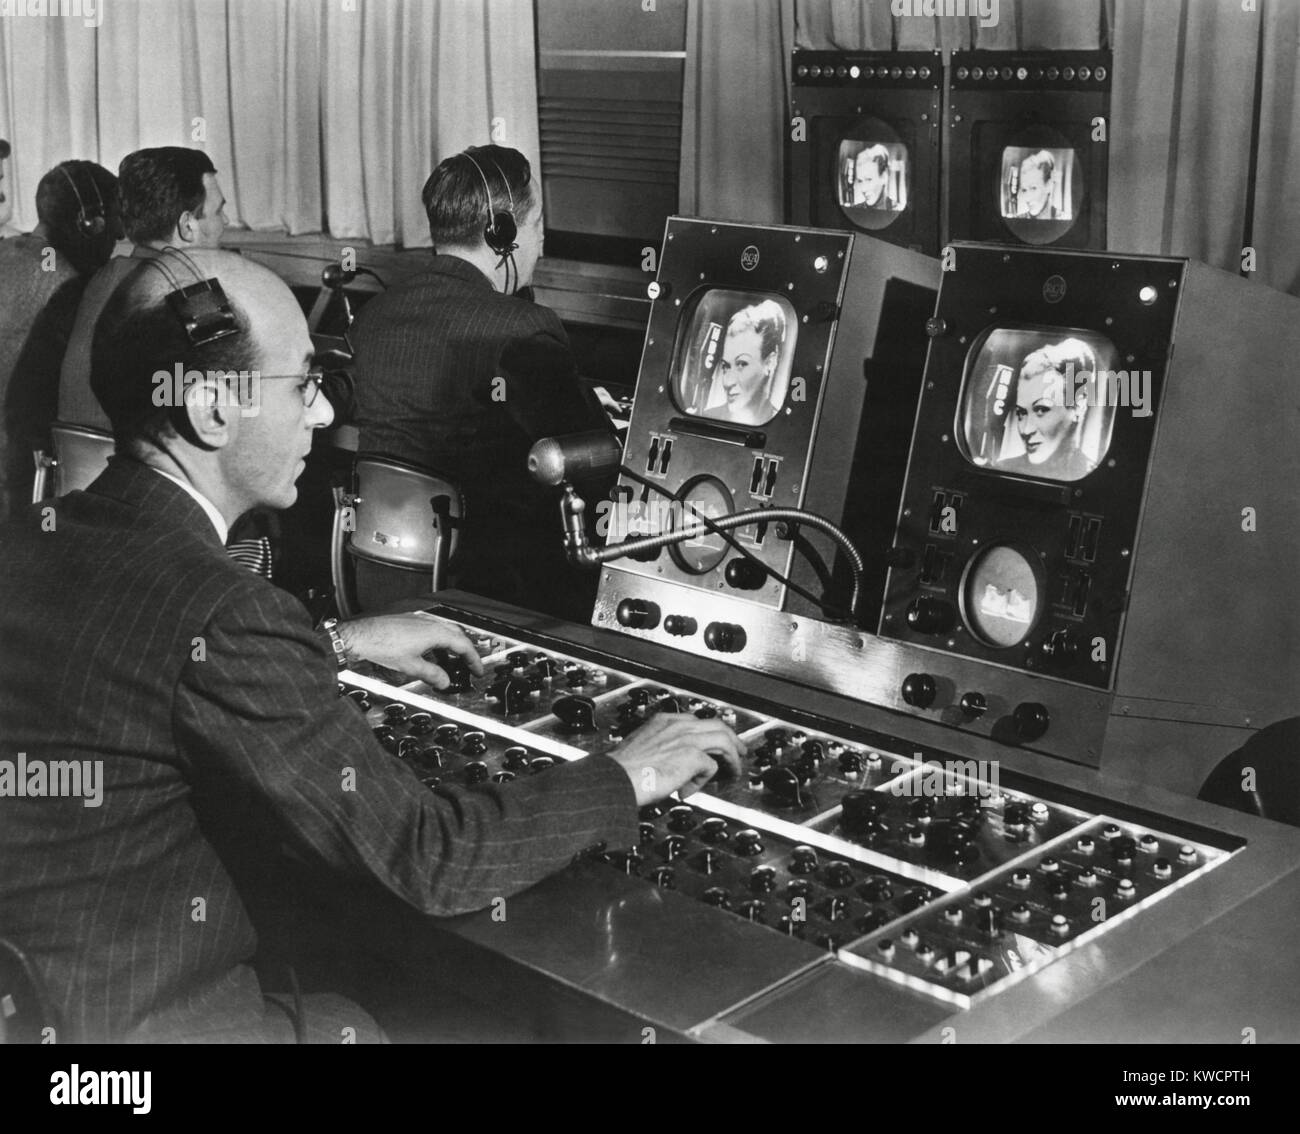 Television studio engineer gets several views of the image and use the complicated set of dials to control the tone - Stock Image